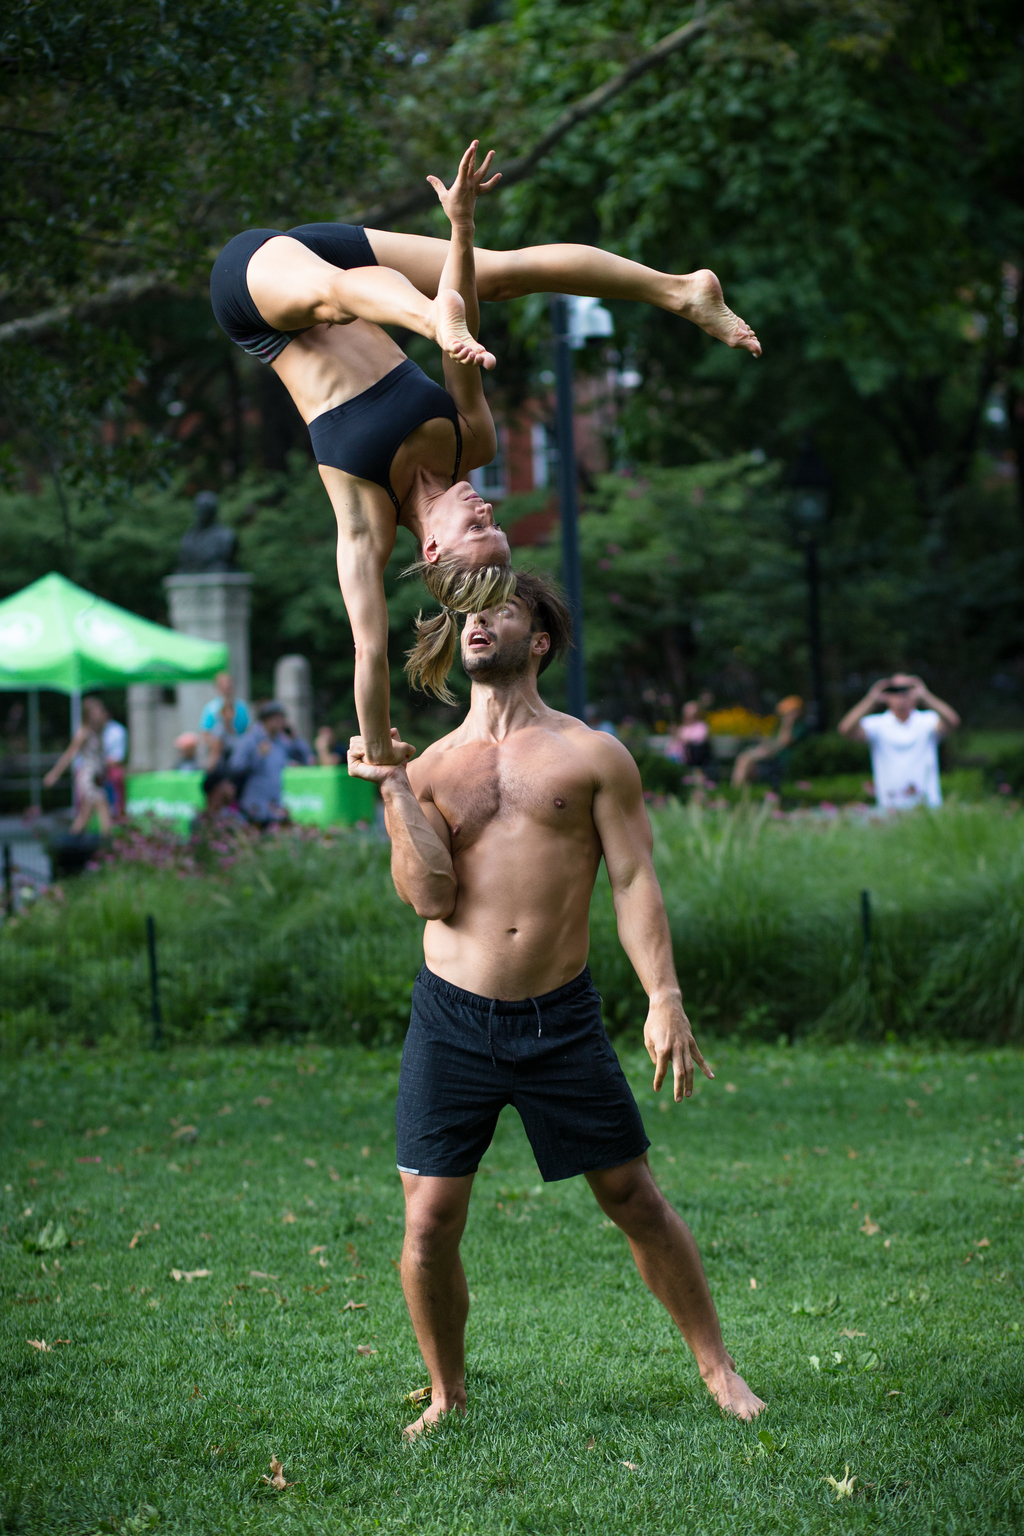 This undated photo provided by Peter Cooper shows Mike Aidala and Chelsey Khorus working on a skill called a Figa in New York's Washington Square Park...